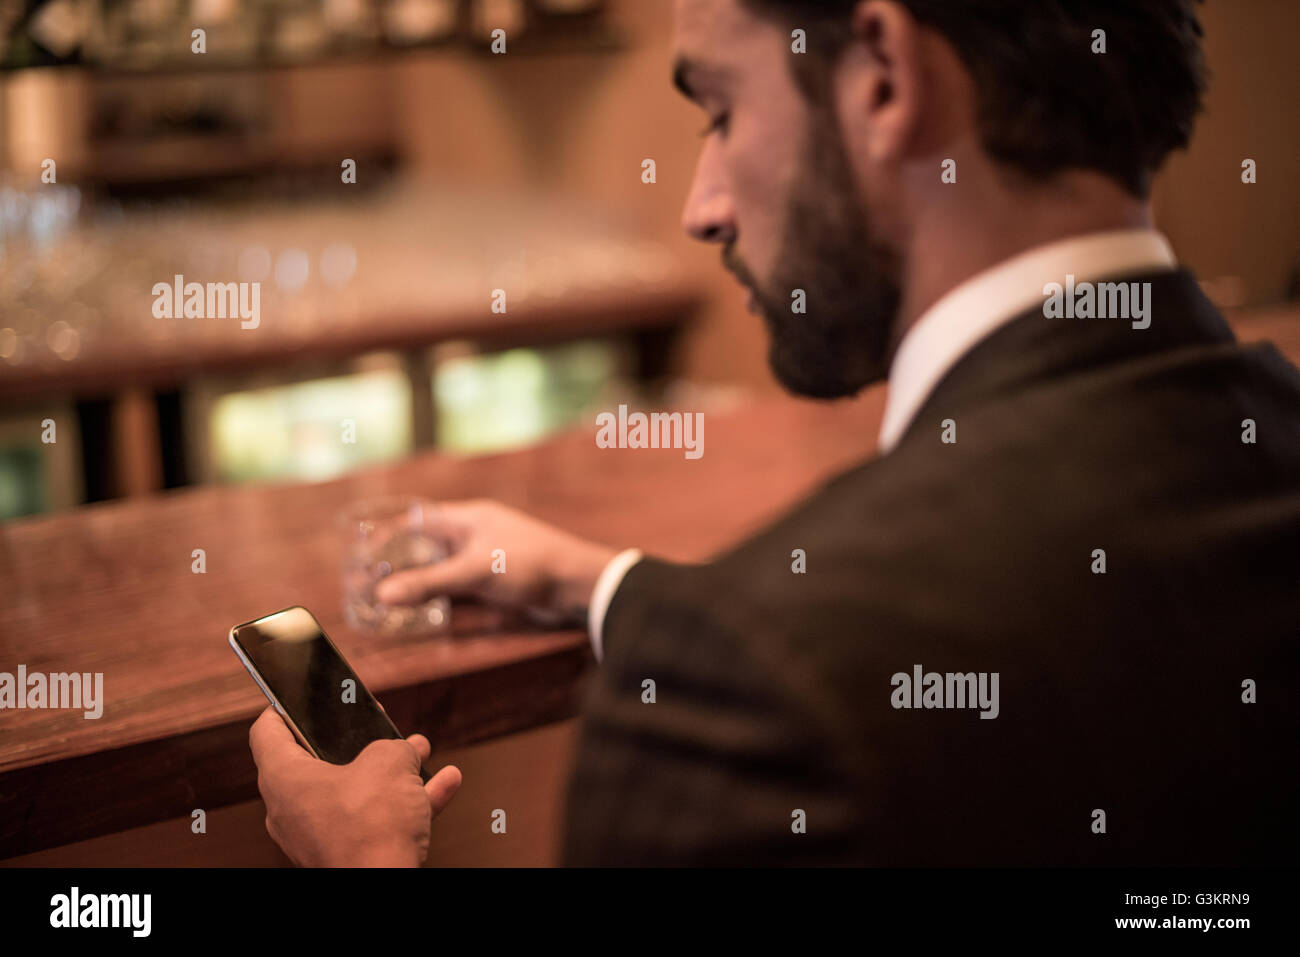 Businessman reading smartphone text at hotel bar - Stock Image